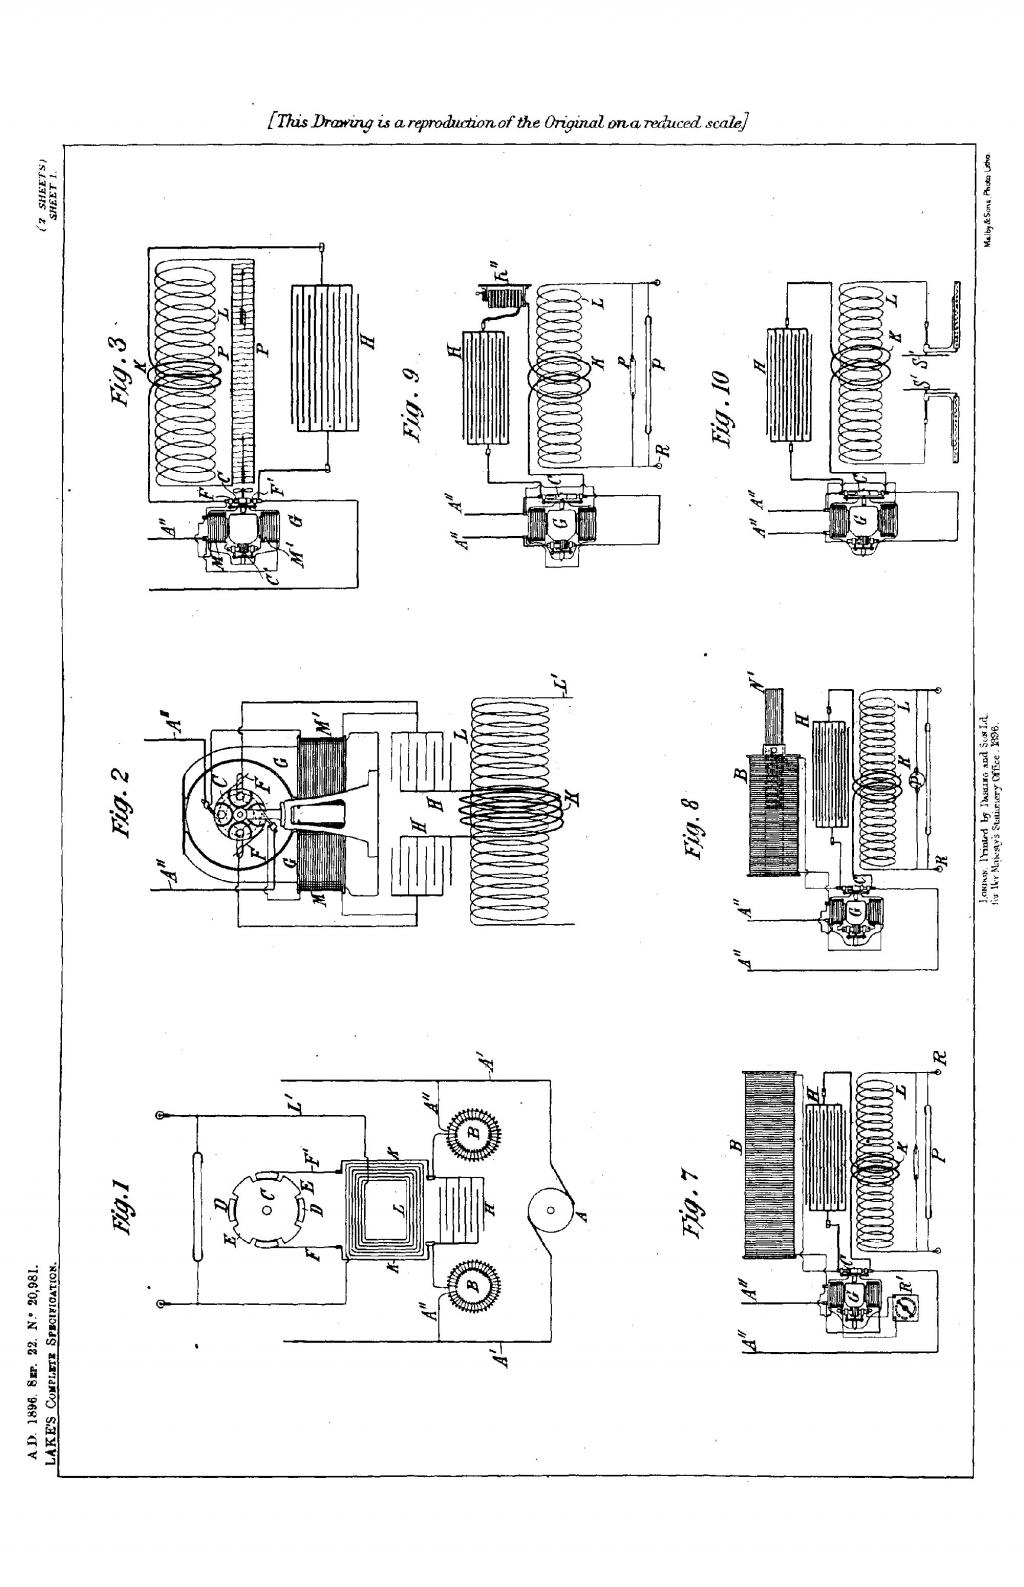 Nikola Tesla British Patent 20,981 - Improvements Relating to the Production, Regulation, and Utilization of Electric Currents of High Frequency, and to Apparatus Therefor - Image 1